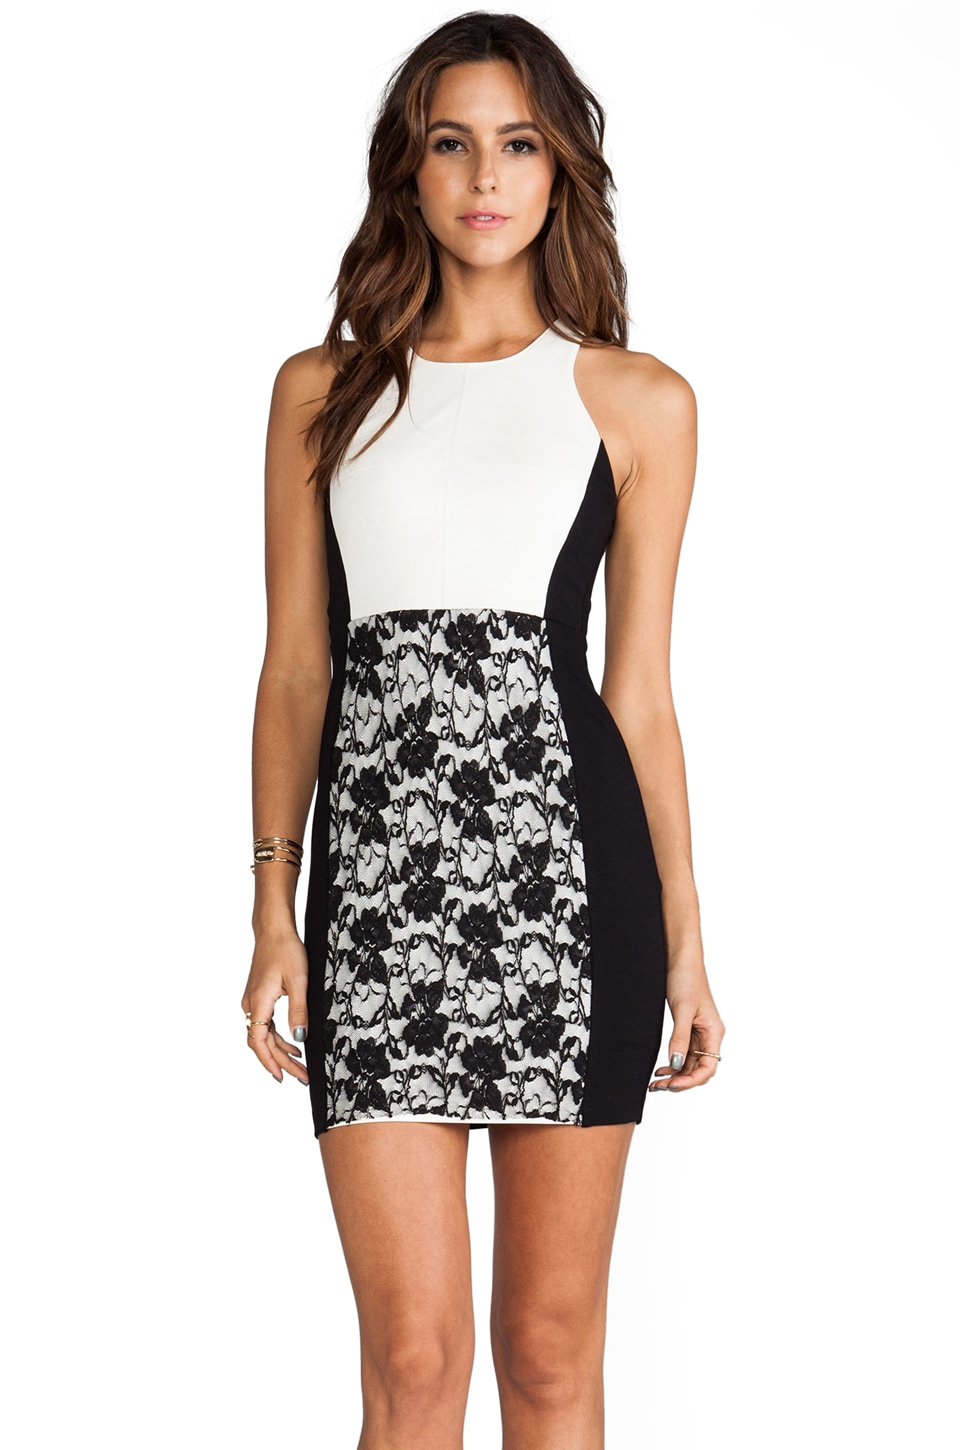 Bailey 44 Dagger and a Kiss Lace Dress in Black/Cream